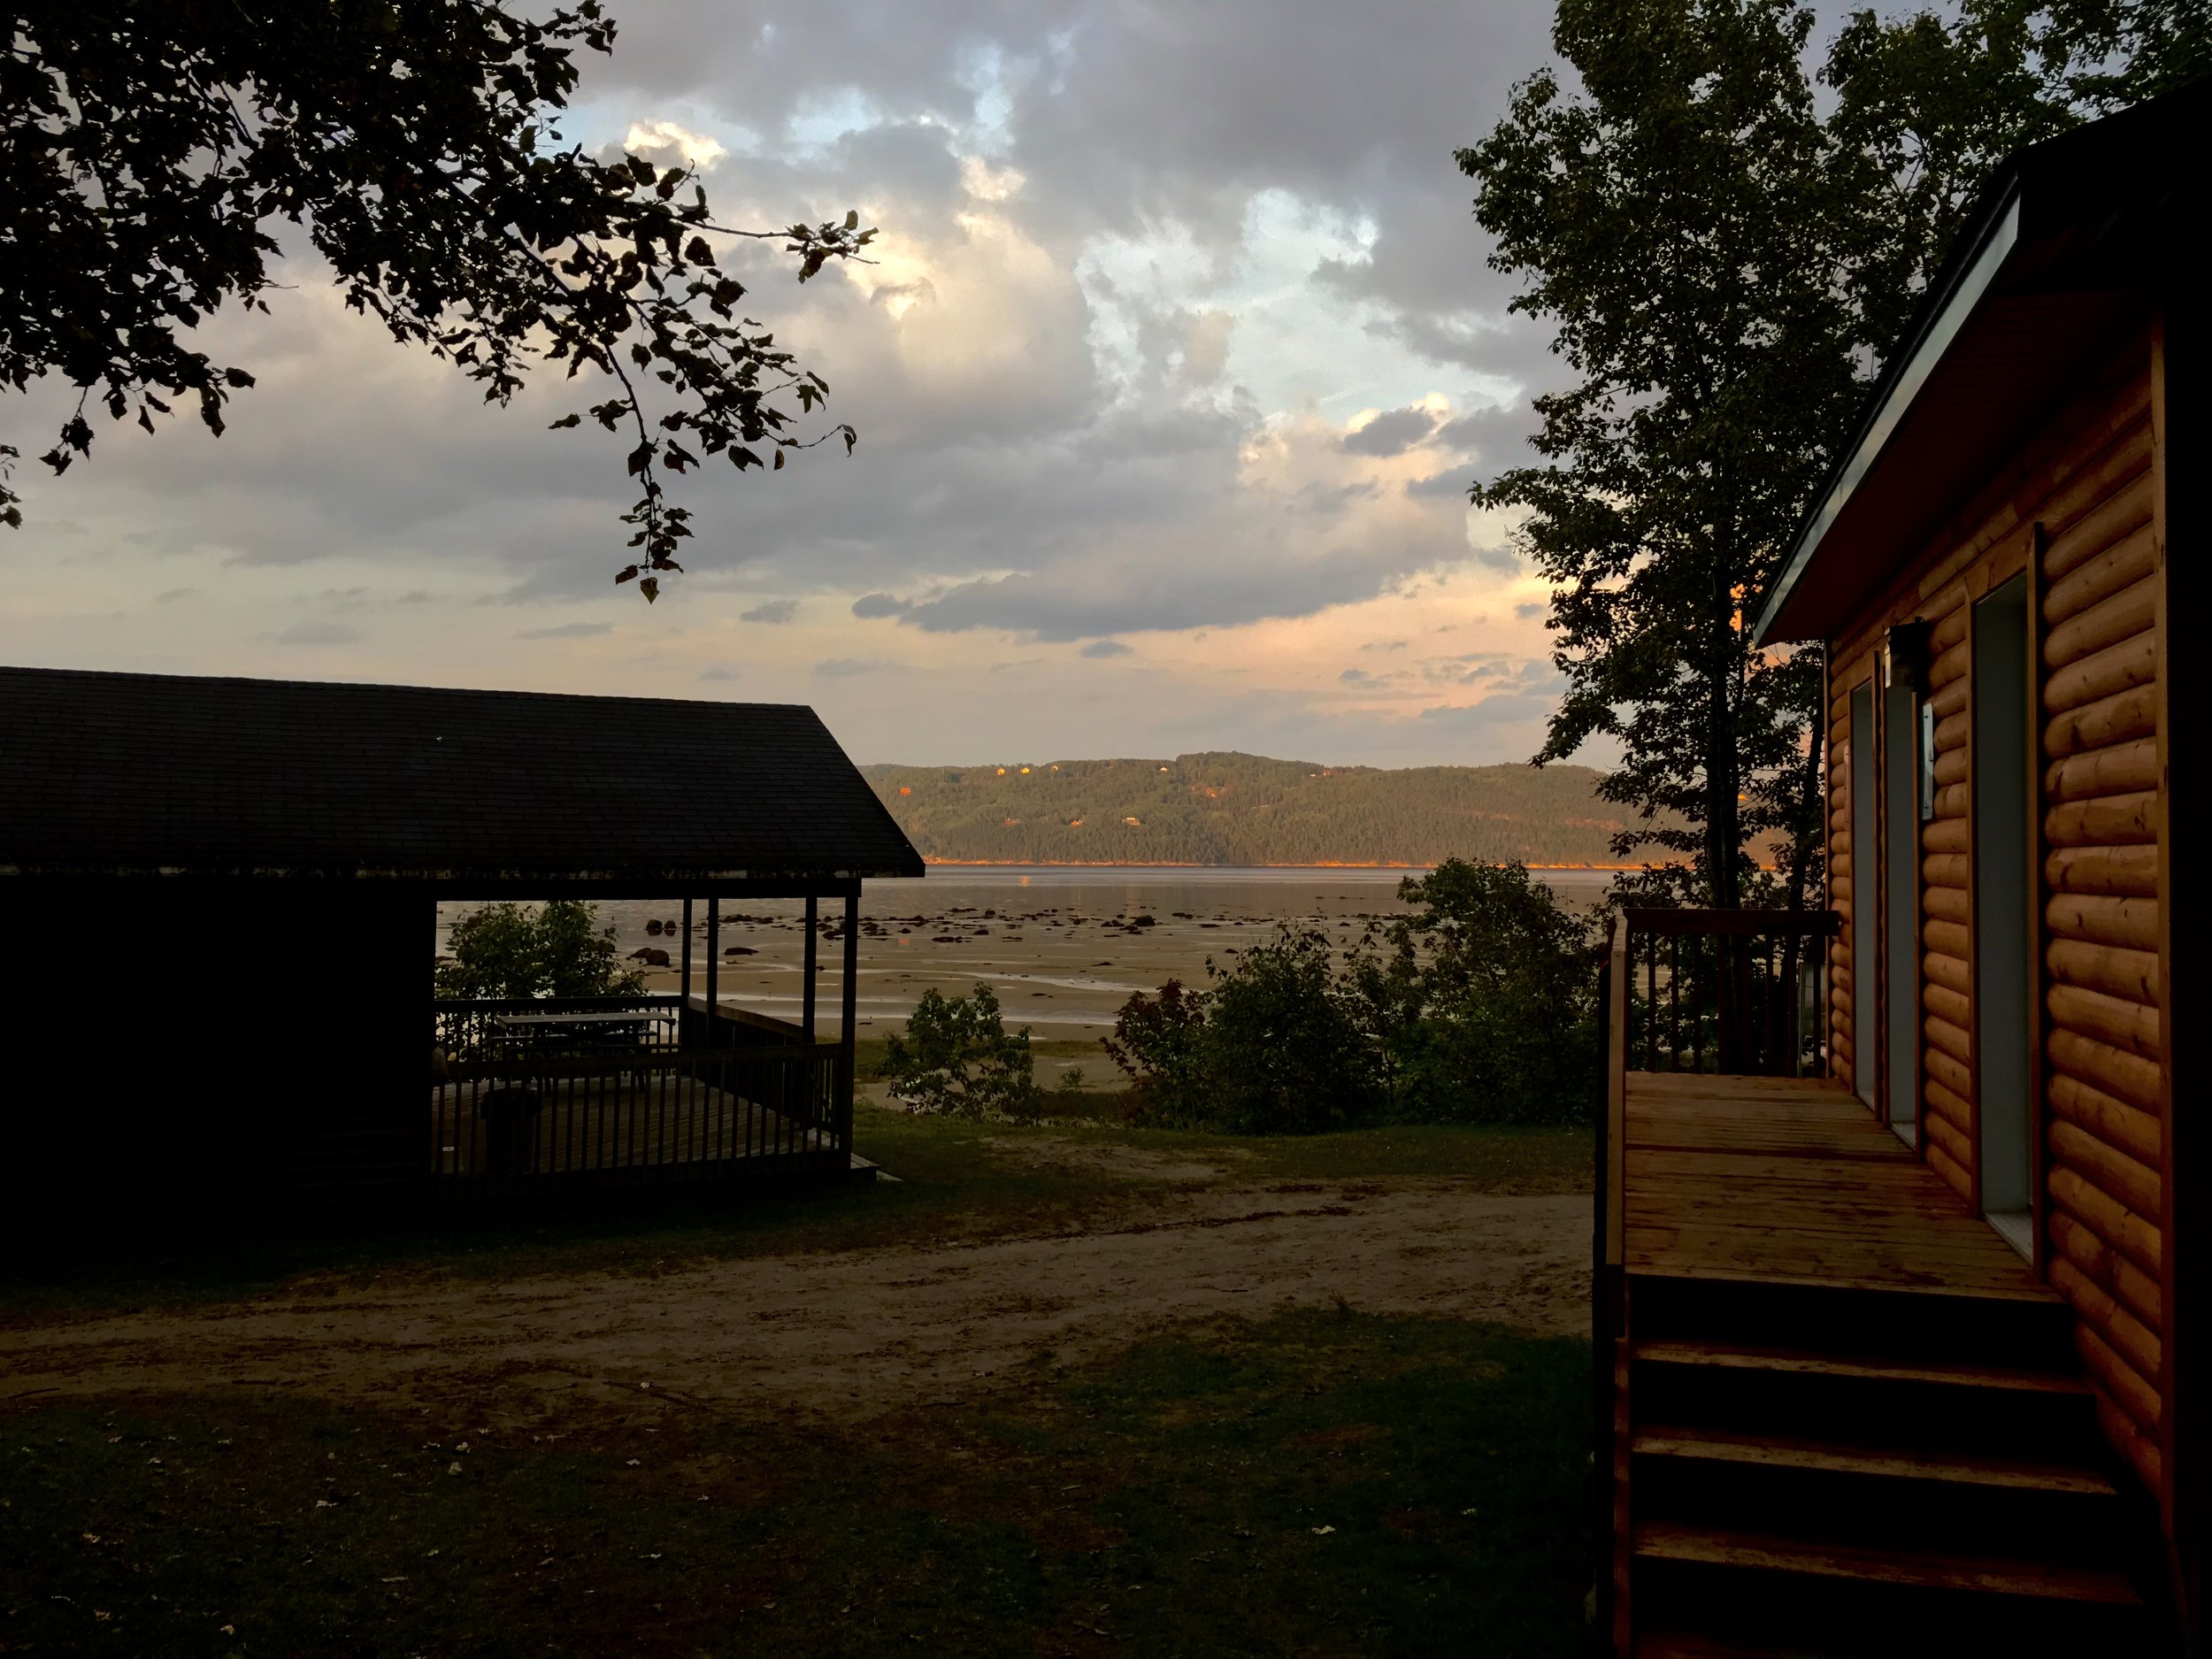 Chalets, Saguenay River, August 2017